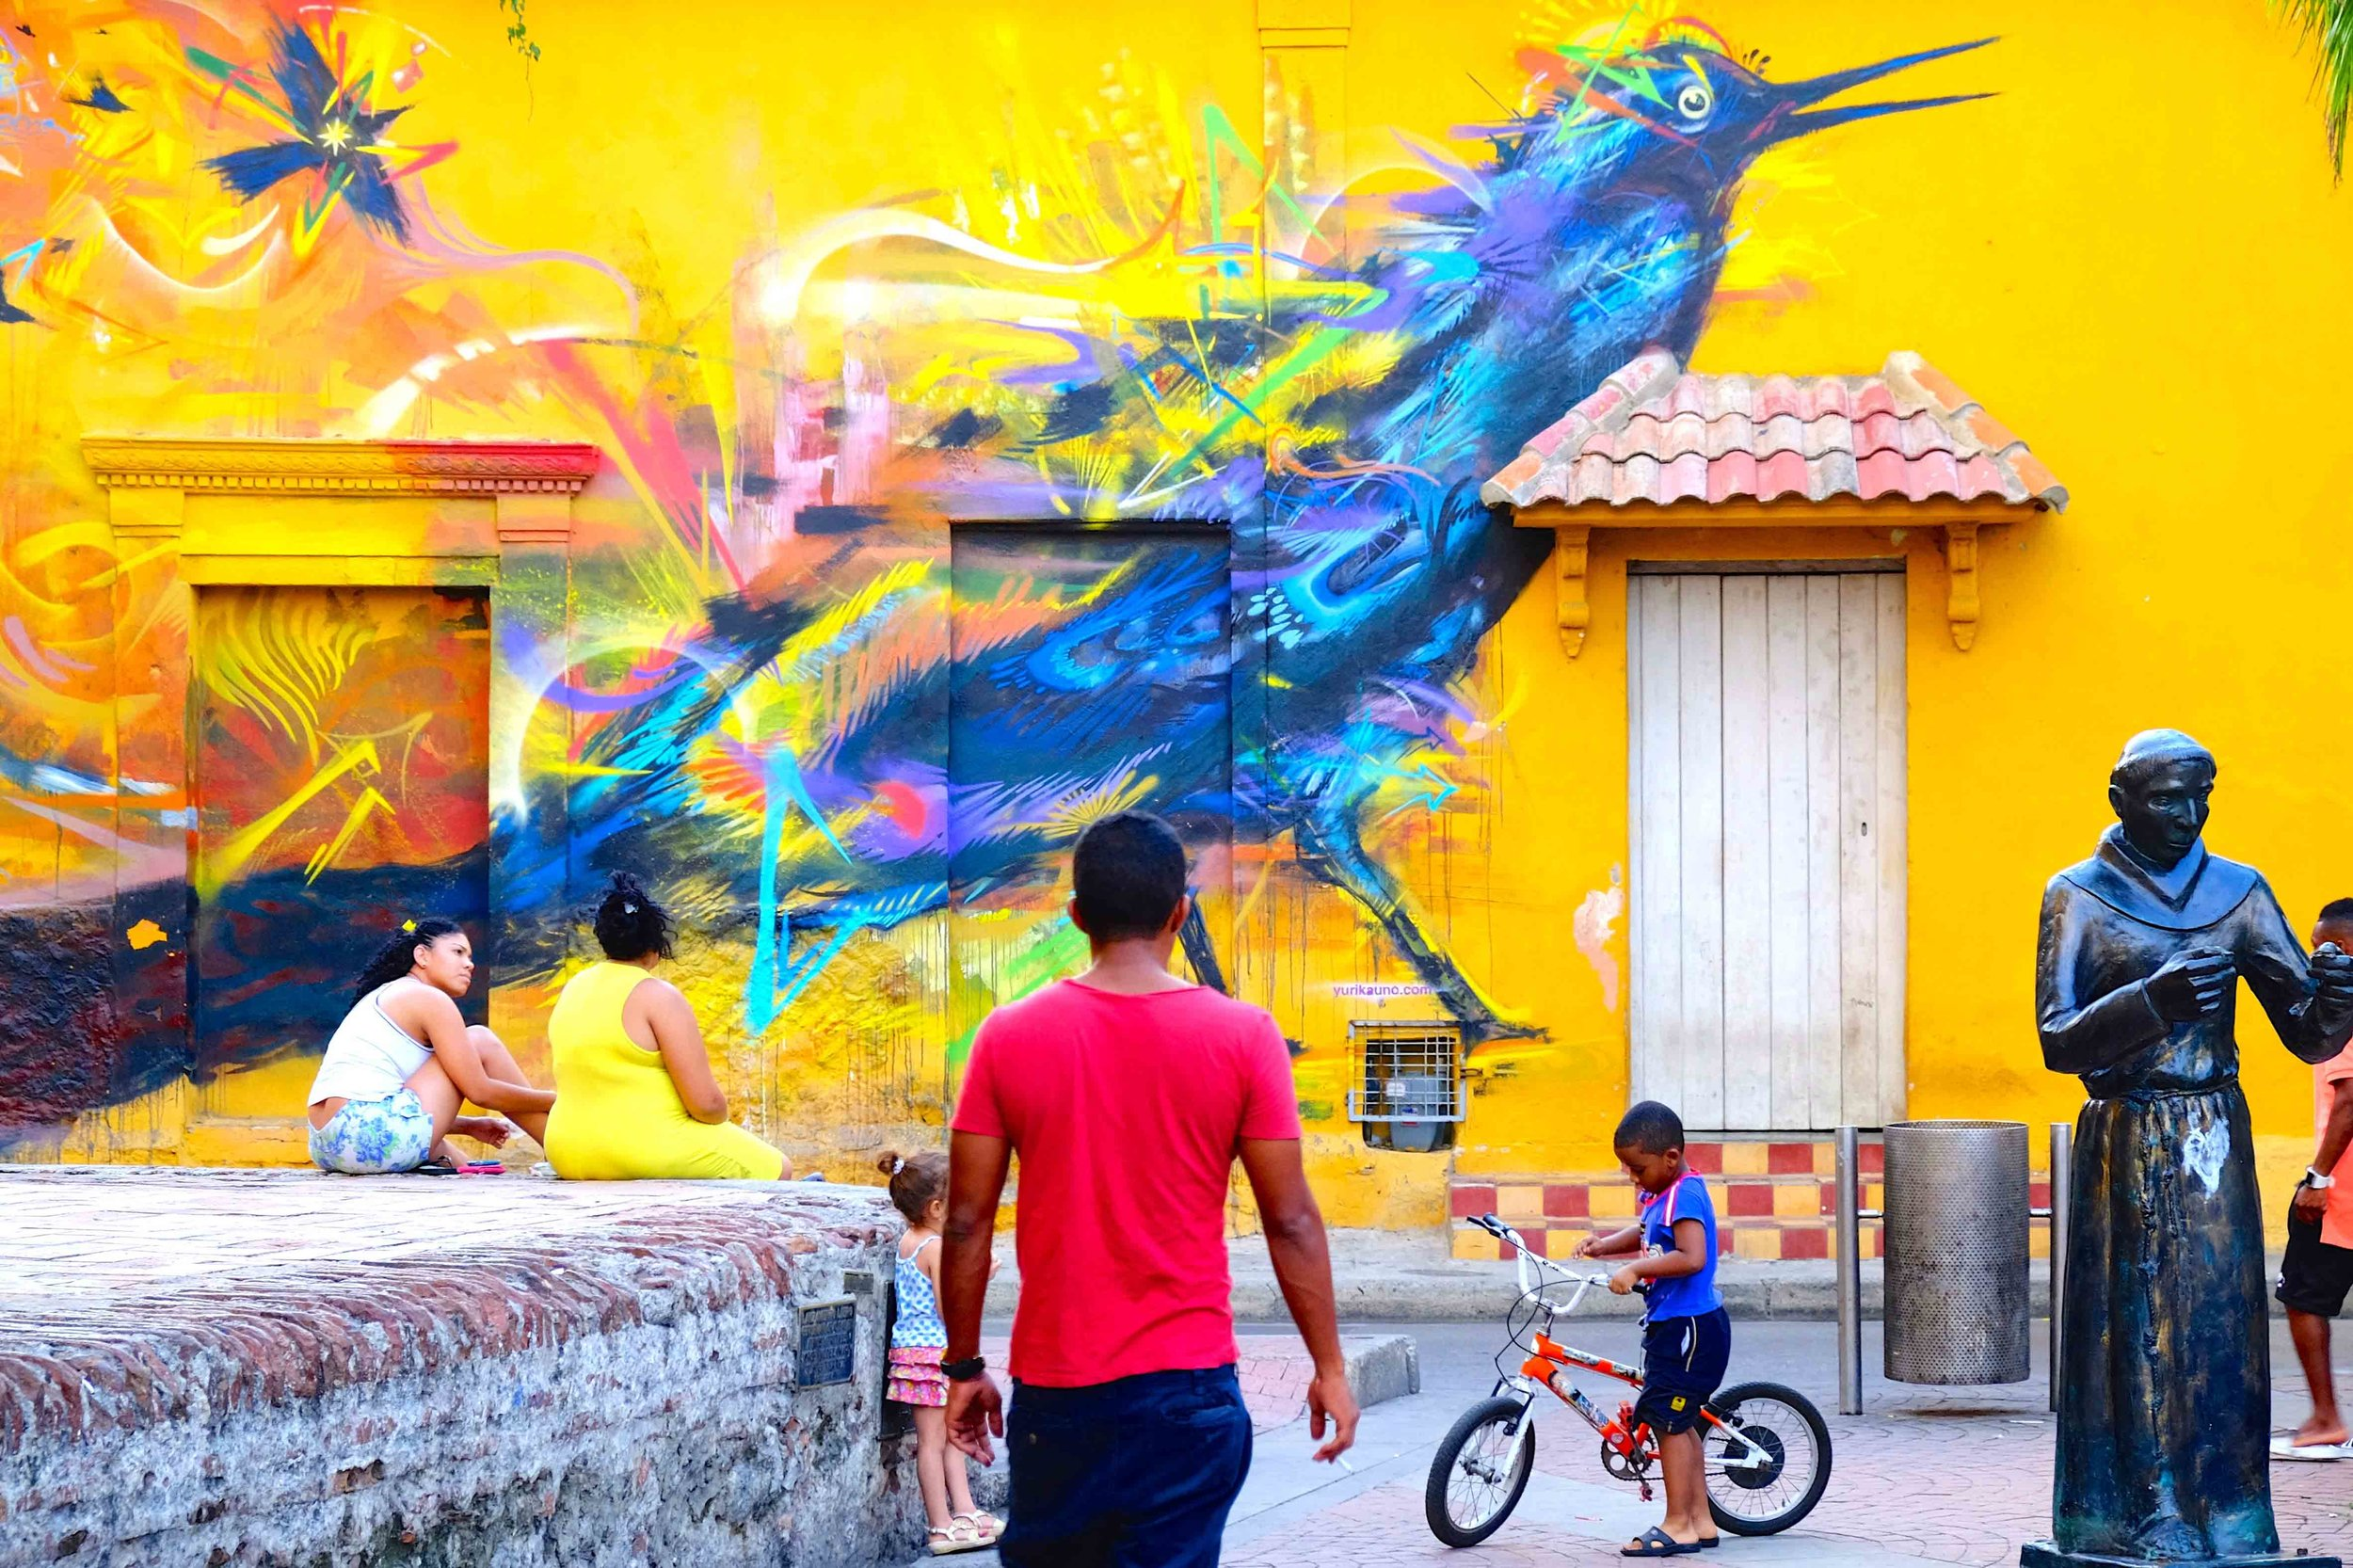 A mural in the Getsemaní neighbourhood of Cartagena. Photo courtesy of Galavanta